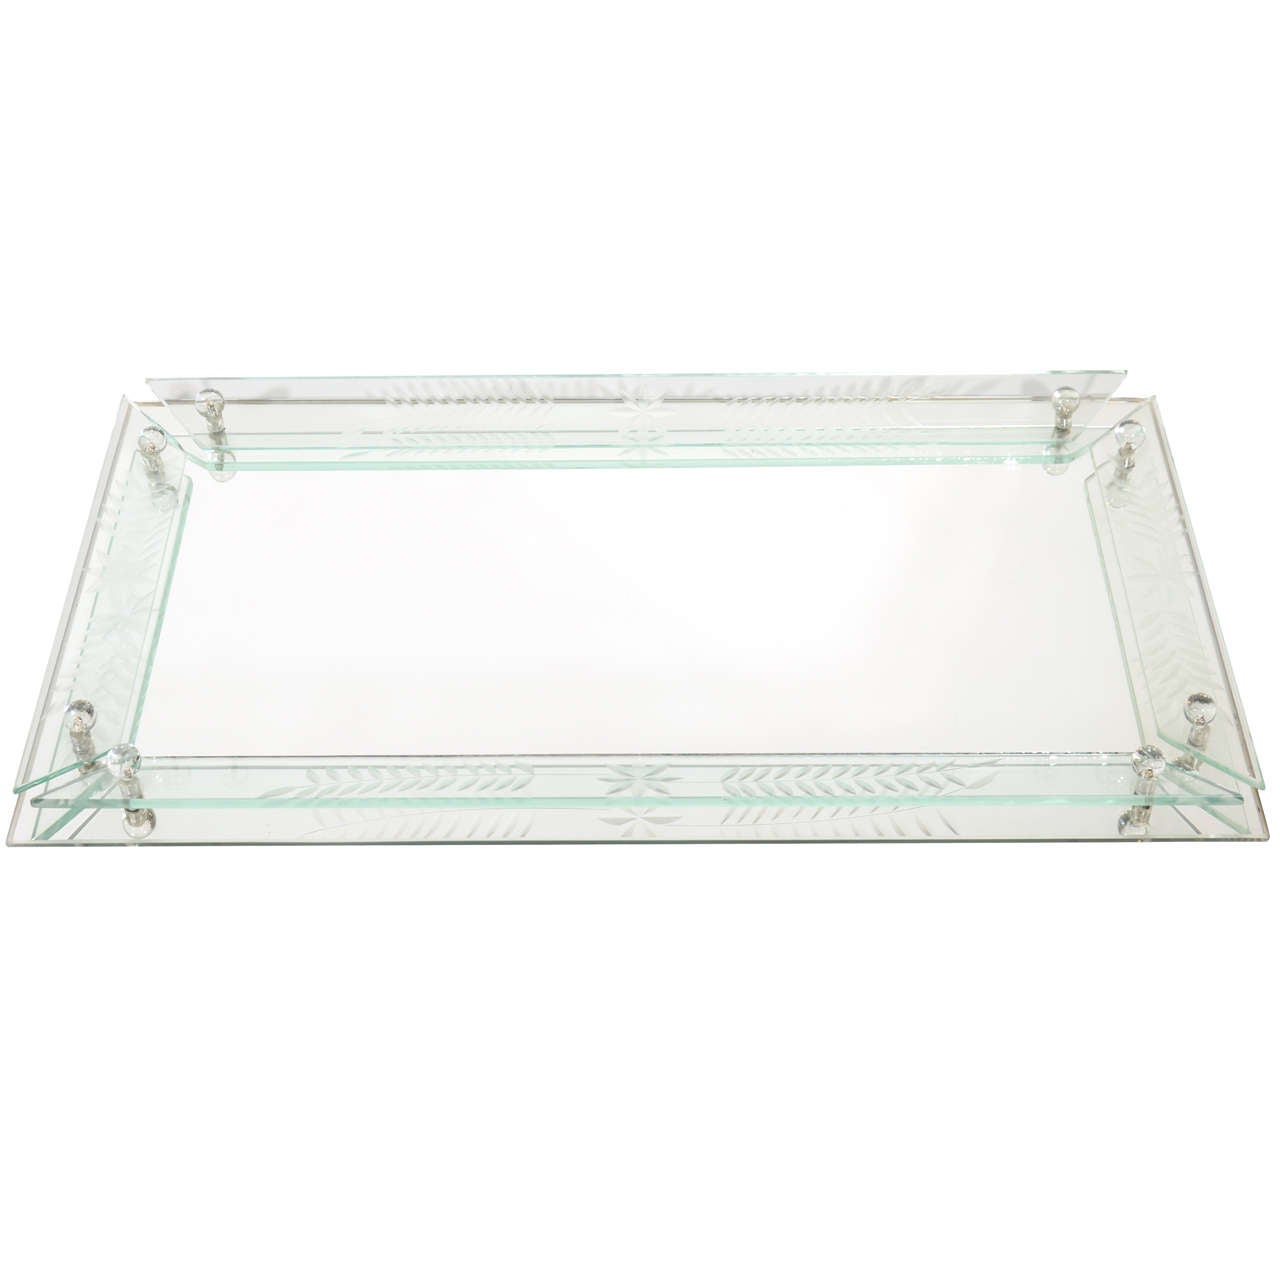 Art Deco Mirrored And Etched Glass Large Vanity Tray For